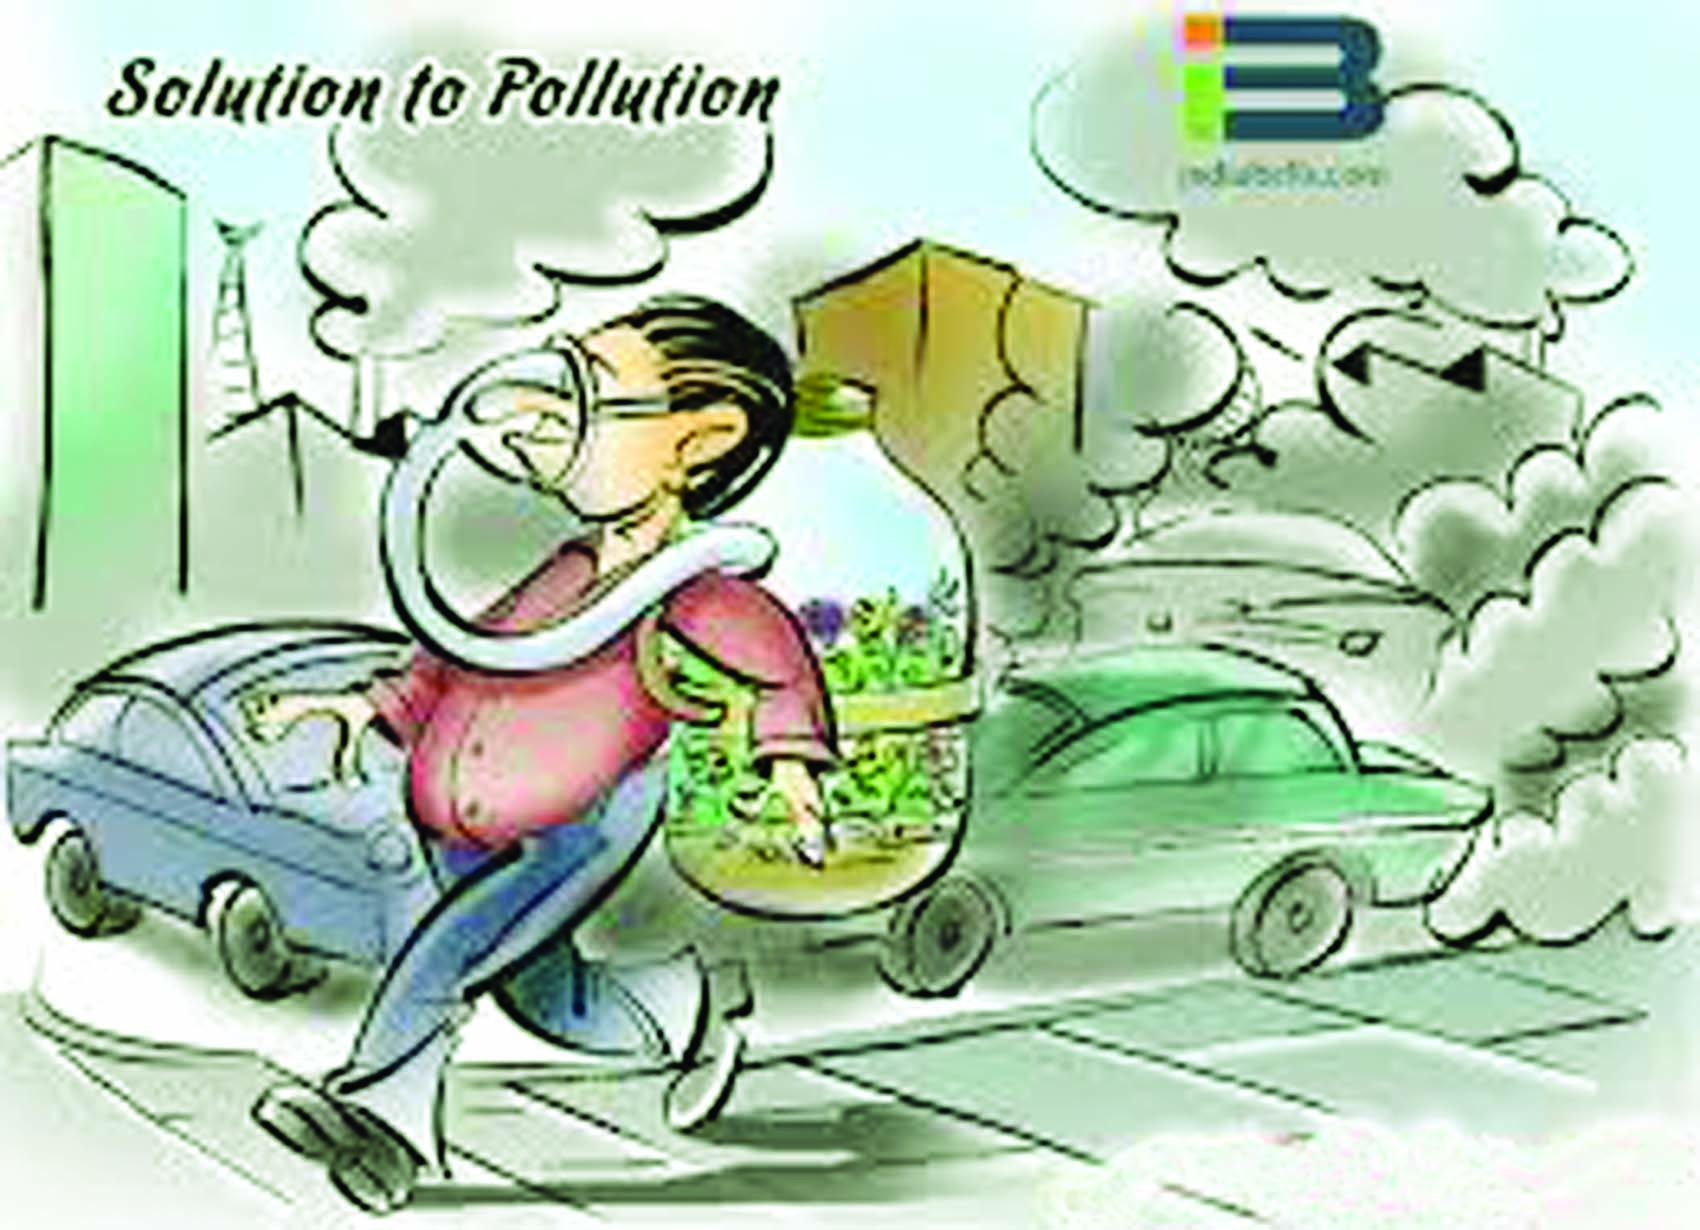 Pollution clipart traffic pollution #4